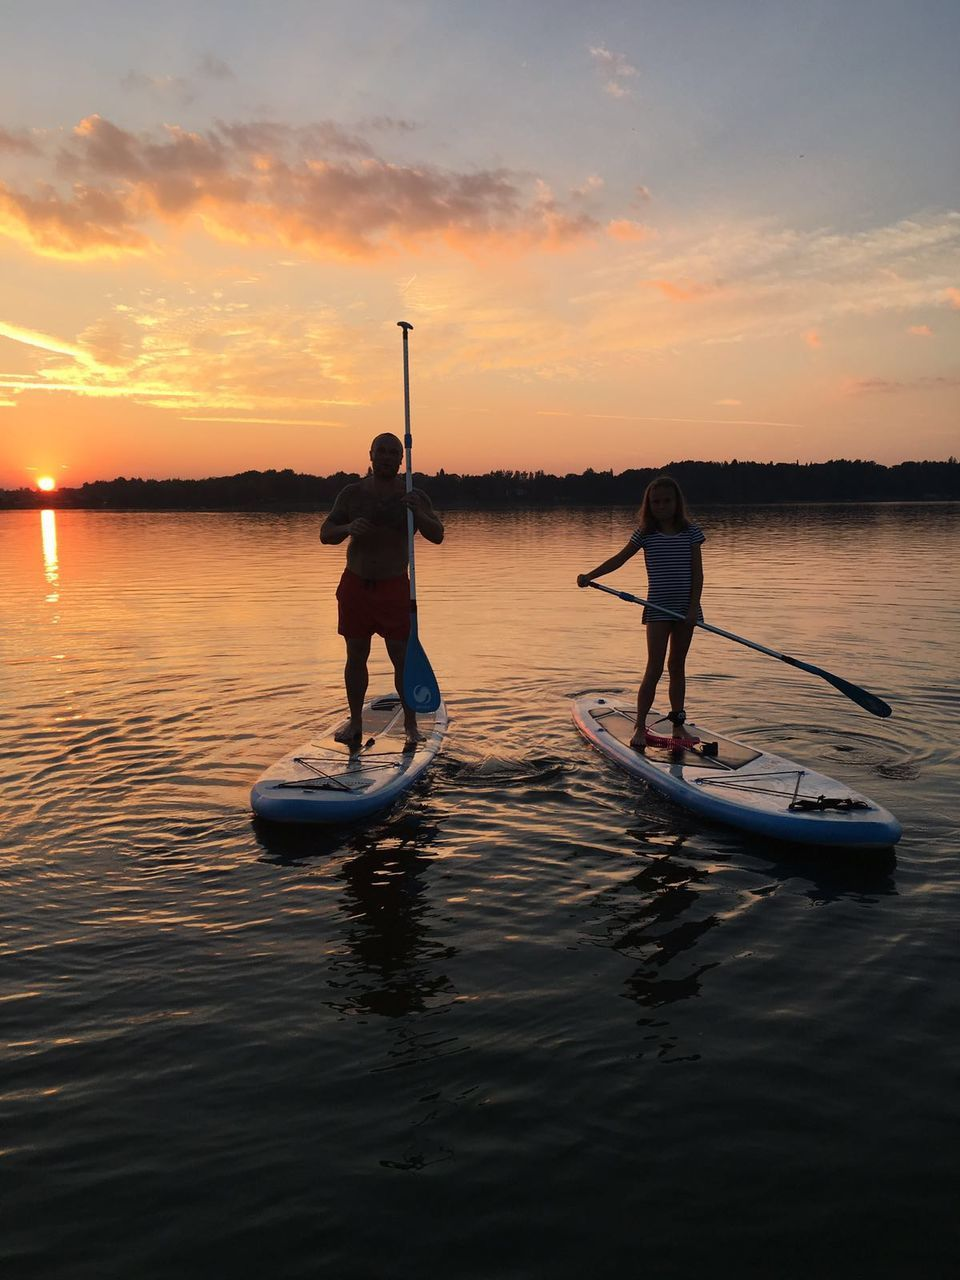 sunset, water, nature, real people, two people, beauty in nature, sky, men, cloud - sky, silhouette, leisure activity, scenics, waterfront, nautical vessel, transportation, full length, standing, outdoors, lifestyles, togetherness, sea, paddleboarding, people